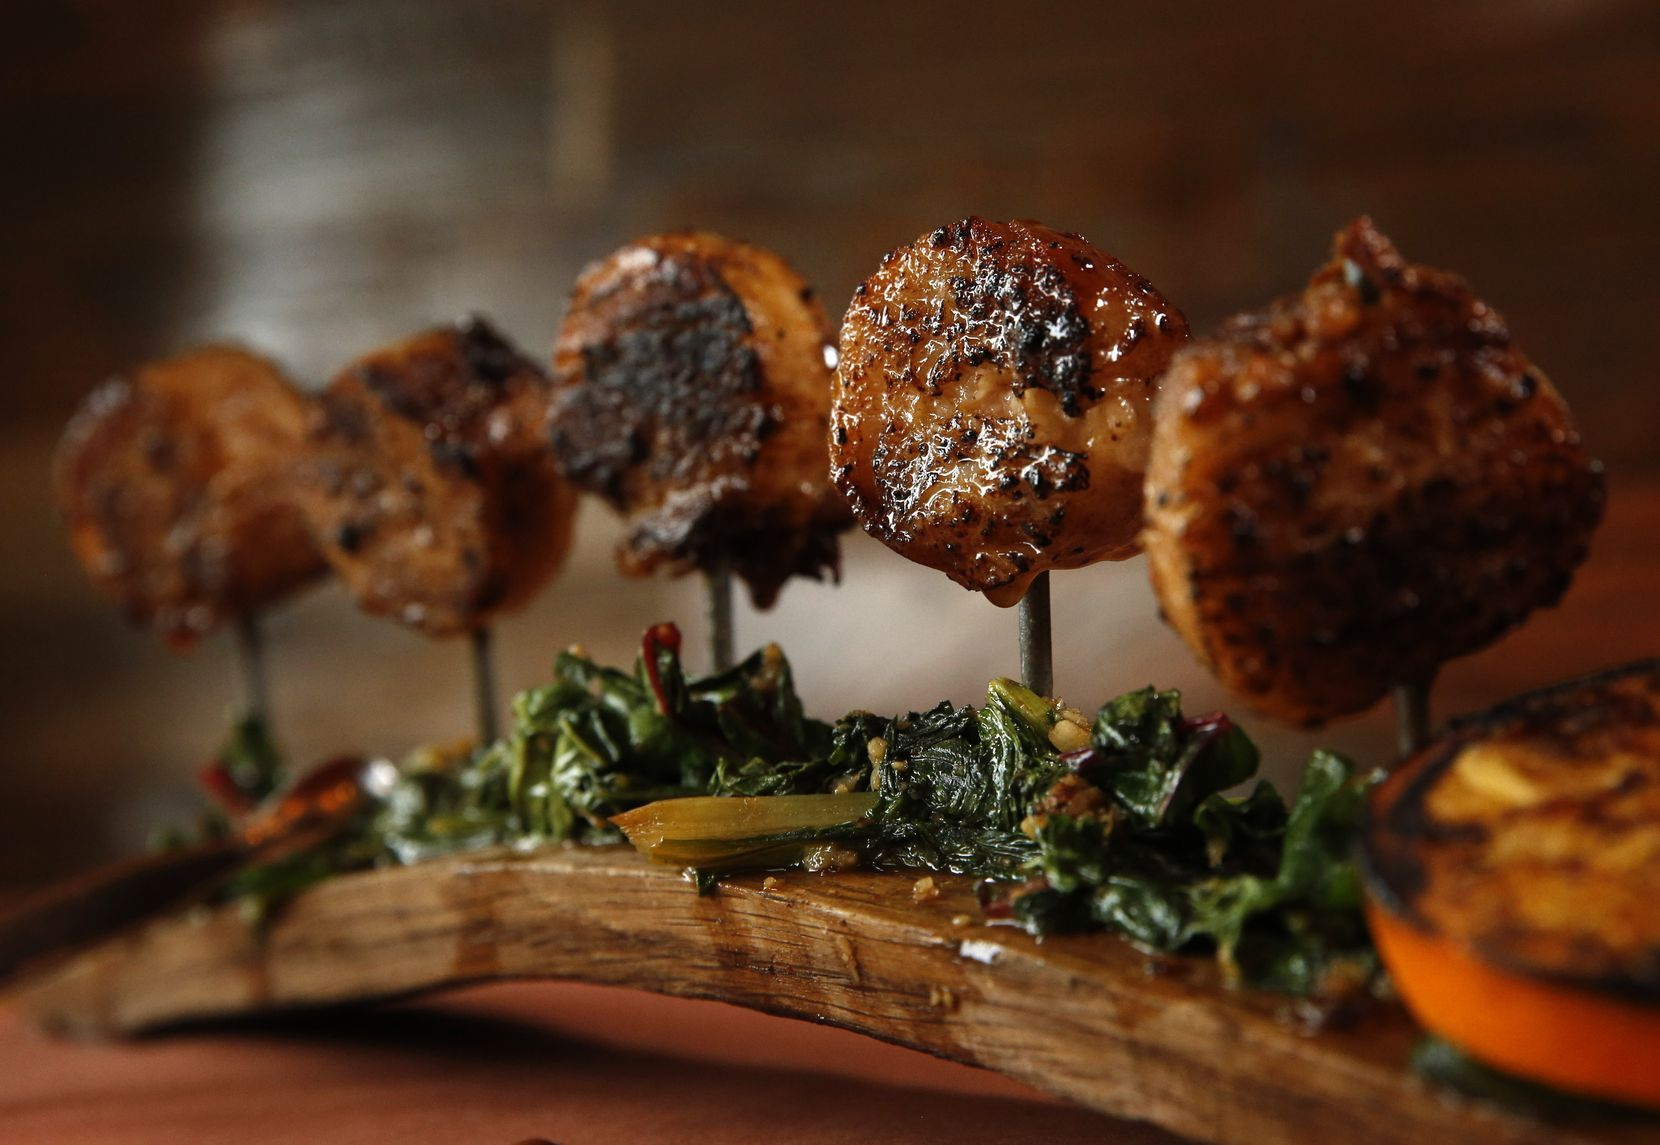 Dallas customers to the coming-soon Rye can expect to find pork belly lollipops on the menu.